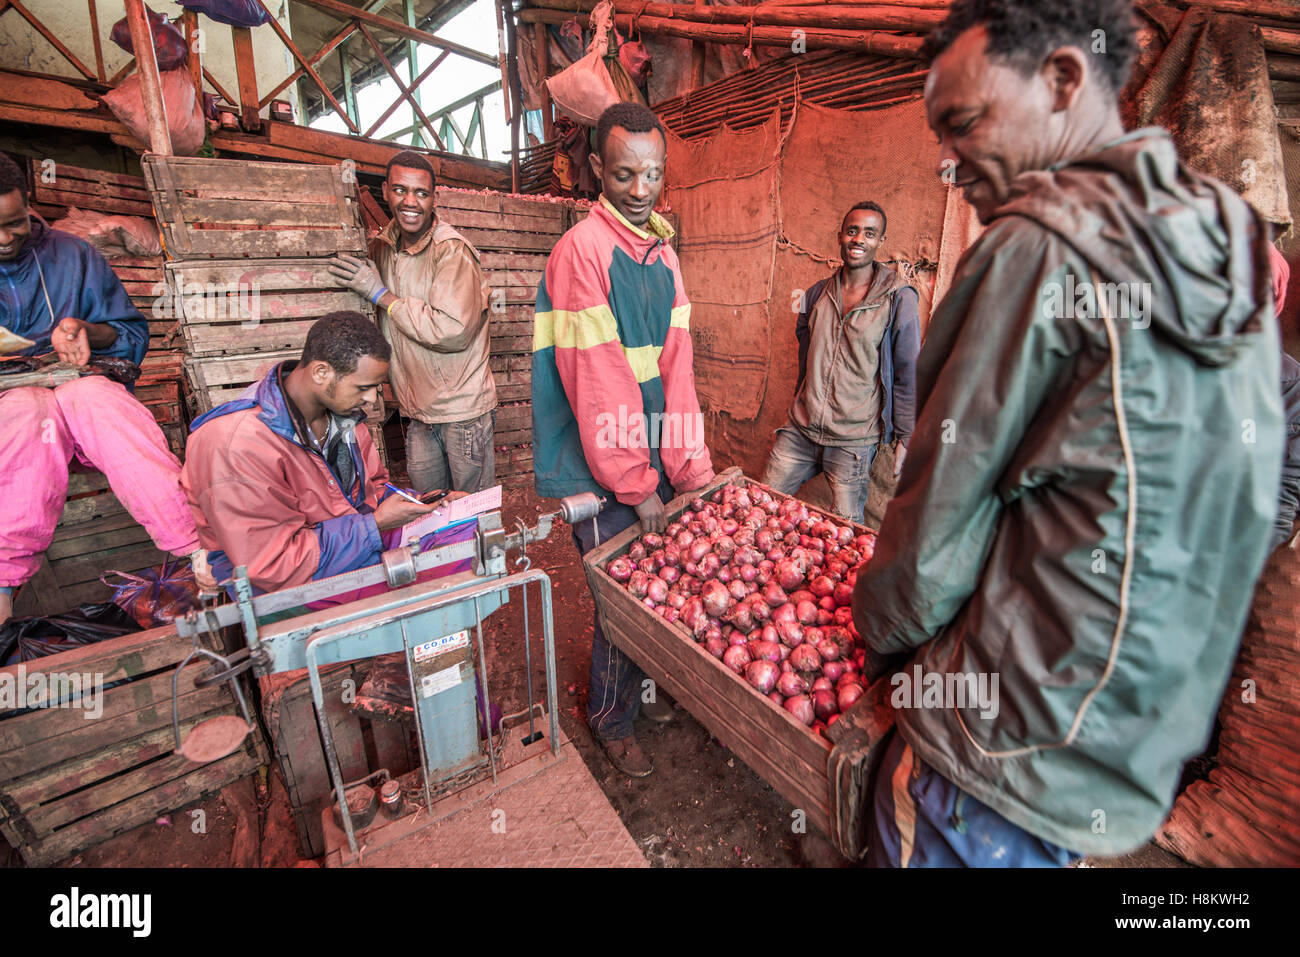 Addis Ababa, Ethiopia- Onions for sale at the Addis Mercato, the largest open air market in Africa. - Stock Image